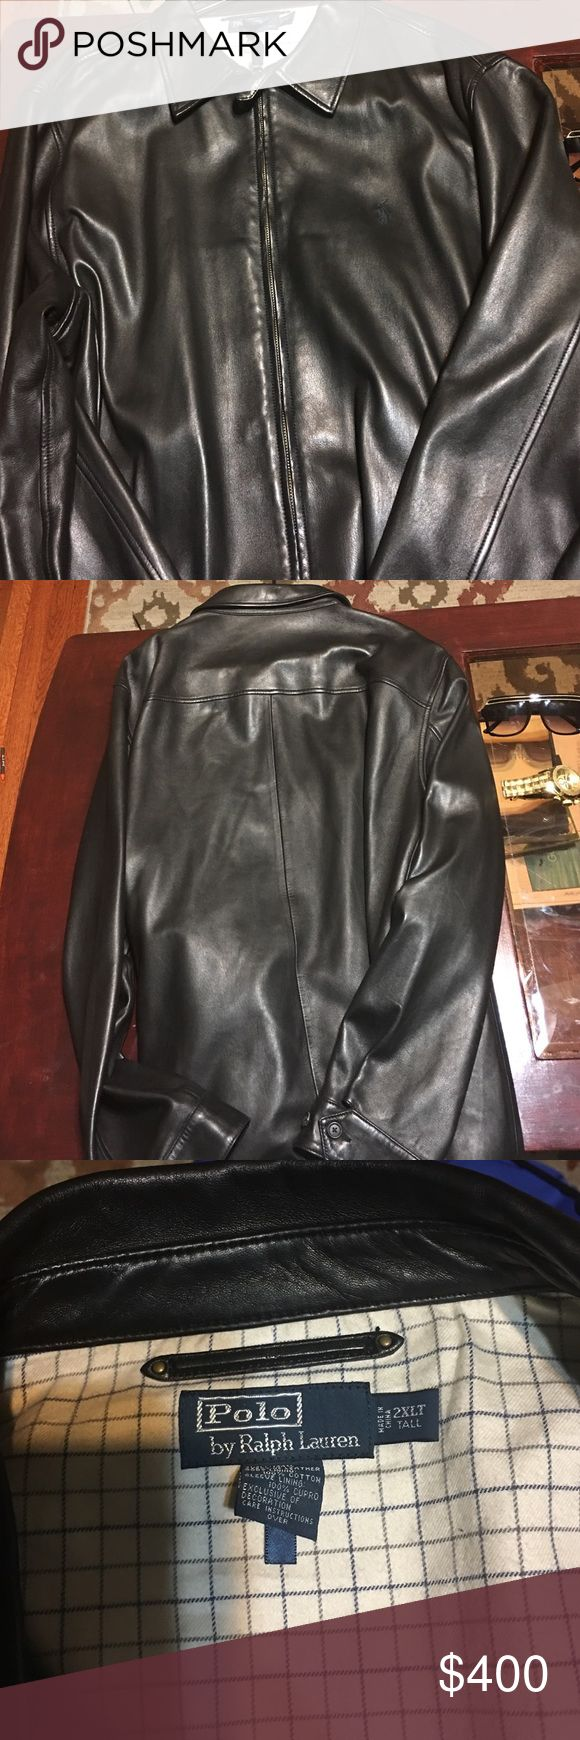 Polo Leather jacket Butter soft leather polo jacket like new worn a few times  Sz XXLT great for casual wear makes a awesome gift for that special someone. Another good find. Ralph Lauren Jackets & Coats Lightweight & Shirt Jackets